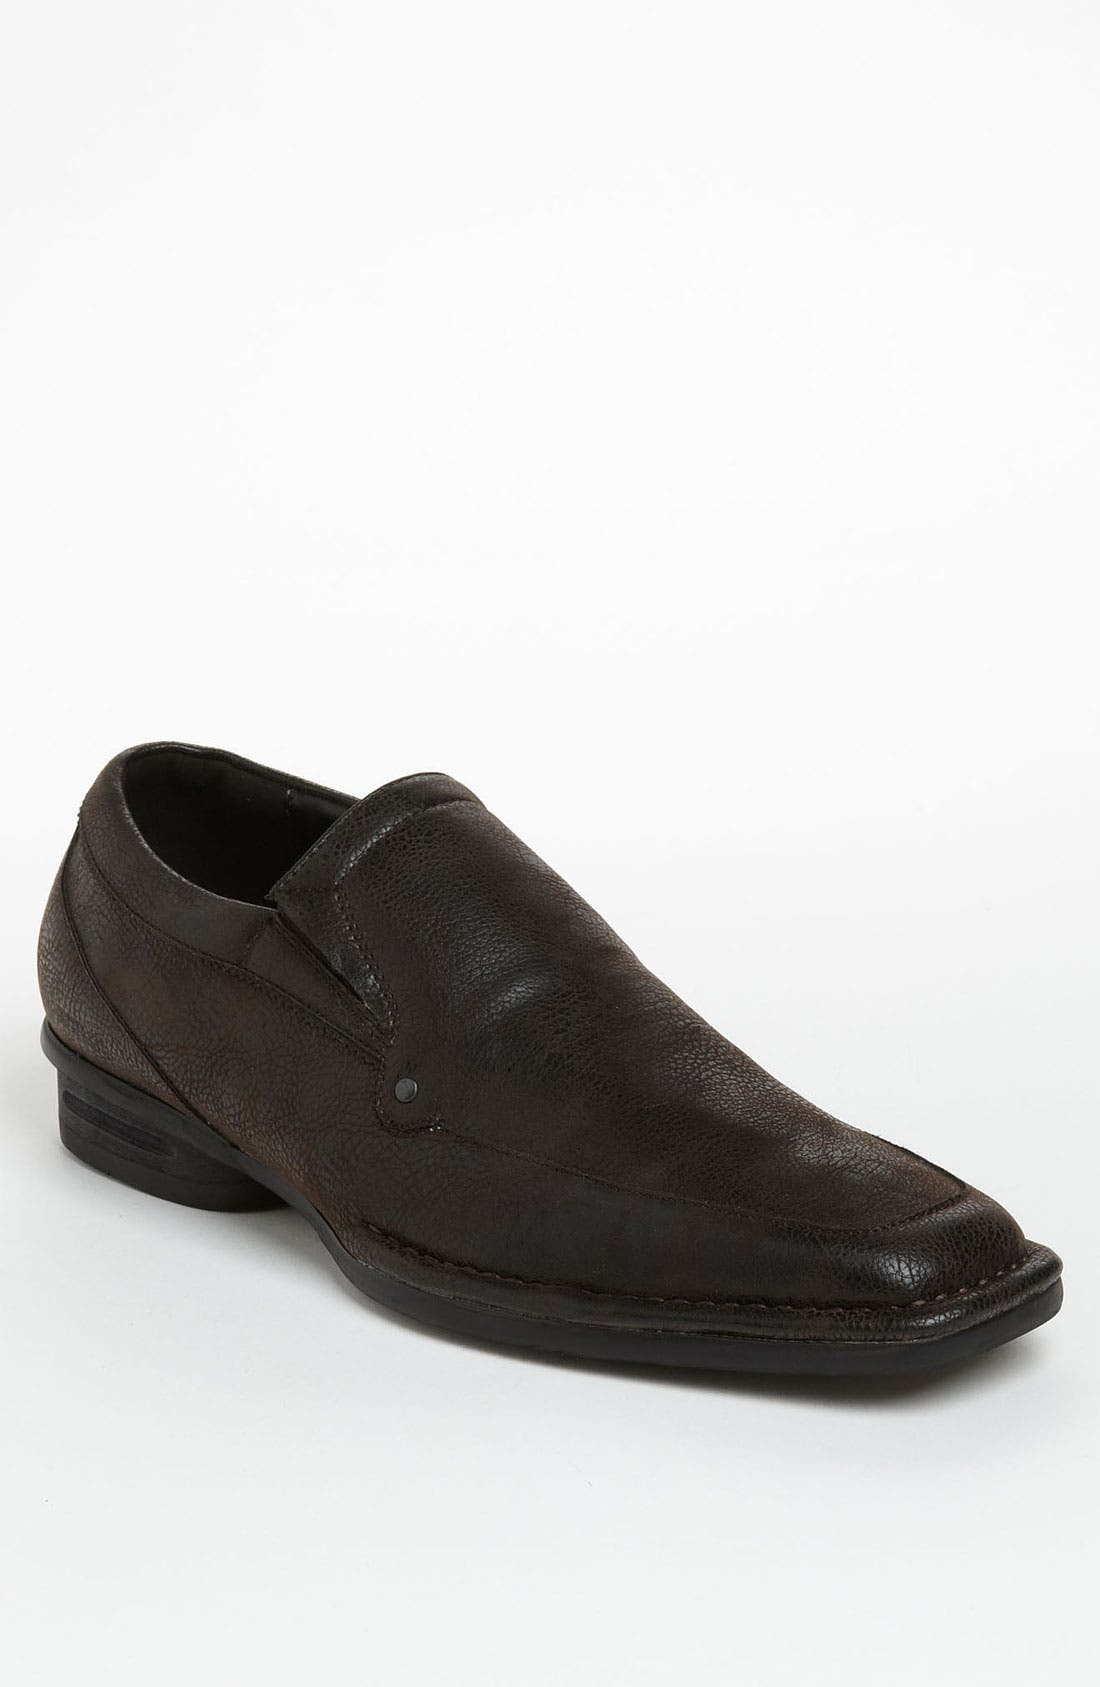 Alternate Image 1 Selected - Kenneth Cole Reaction 'Alternative Plan' Venetian Loafer (Online Only)